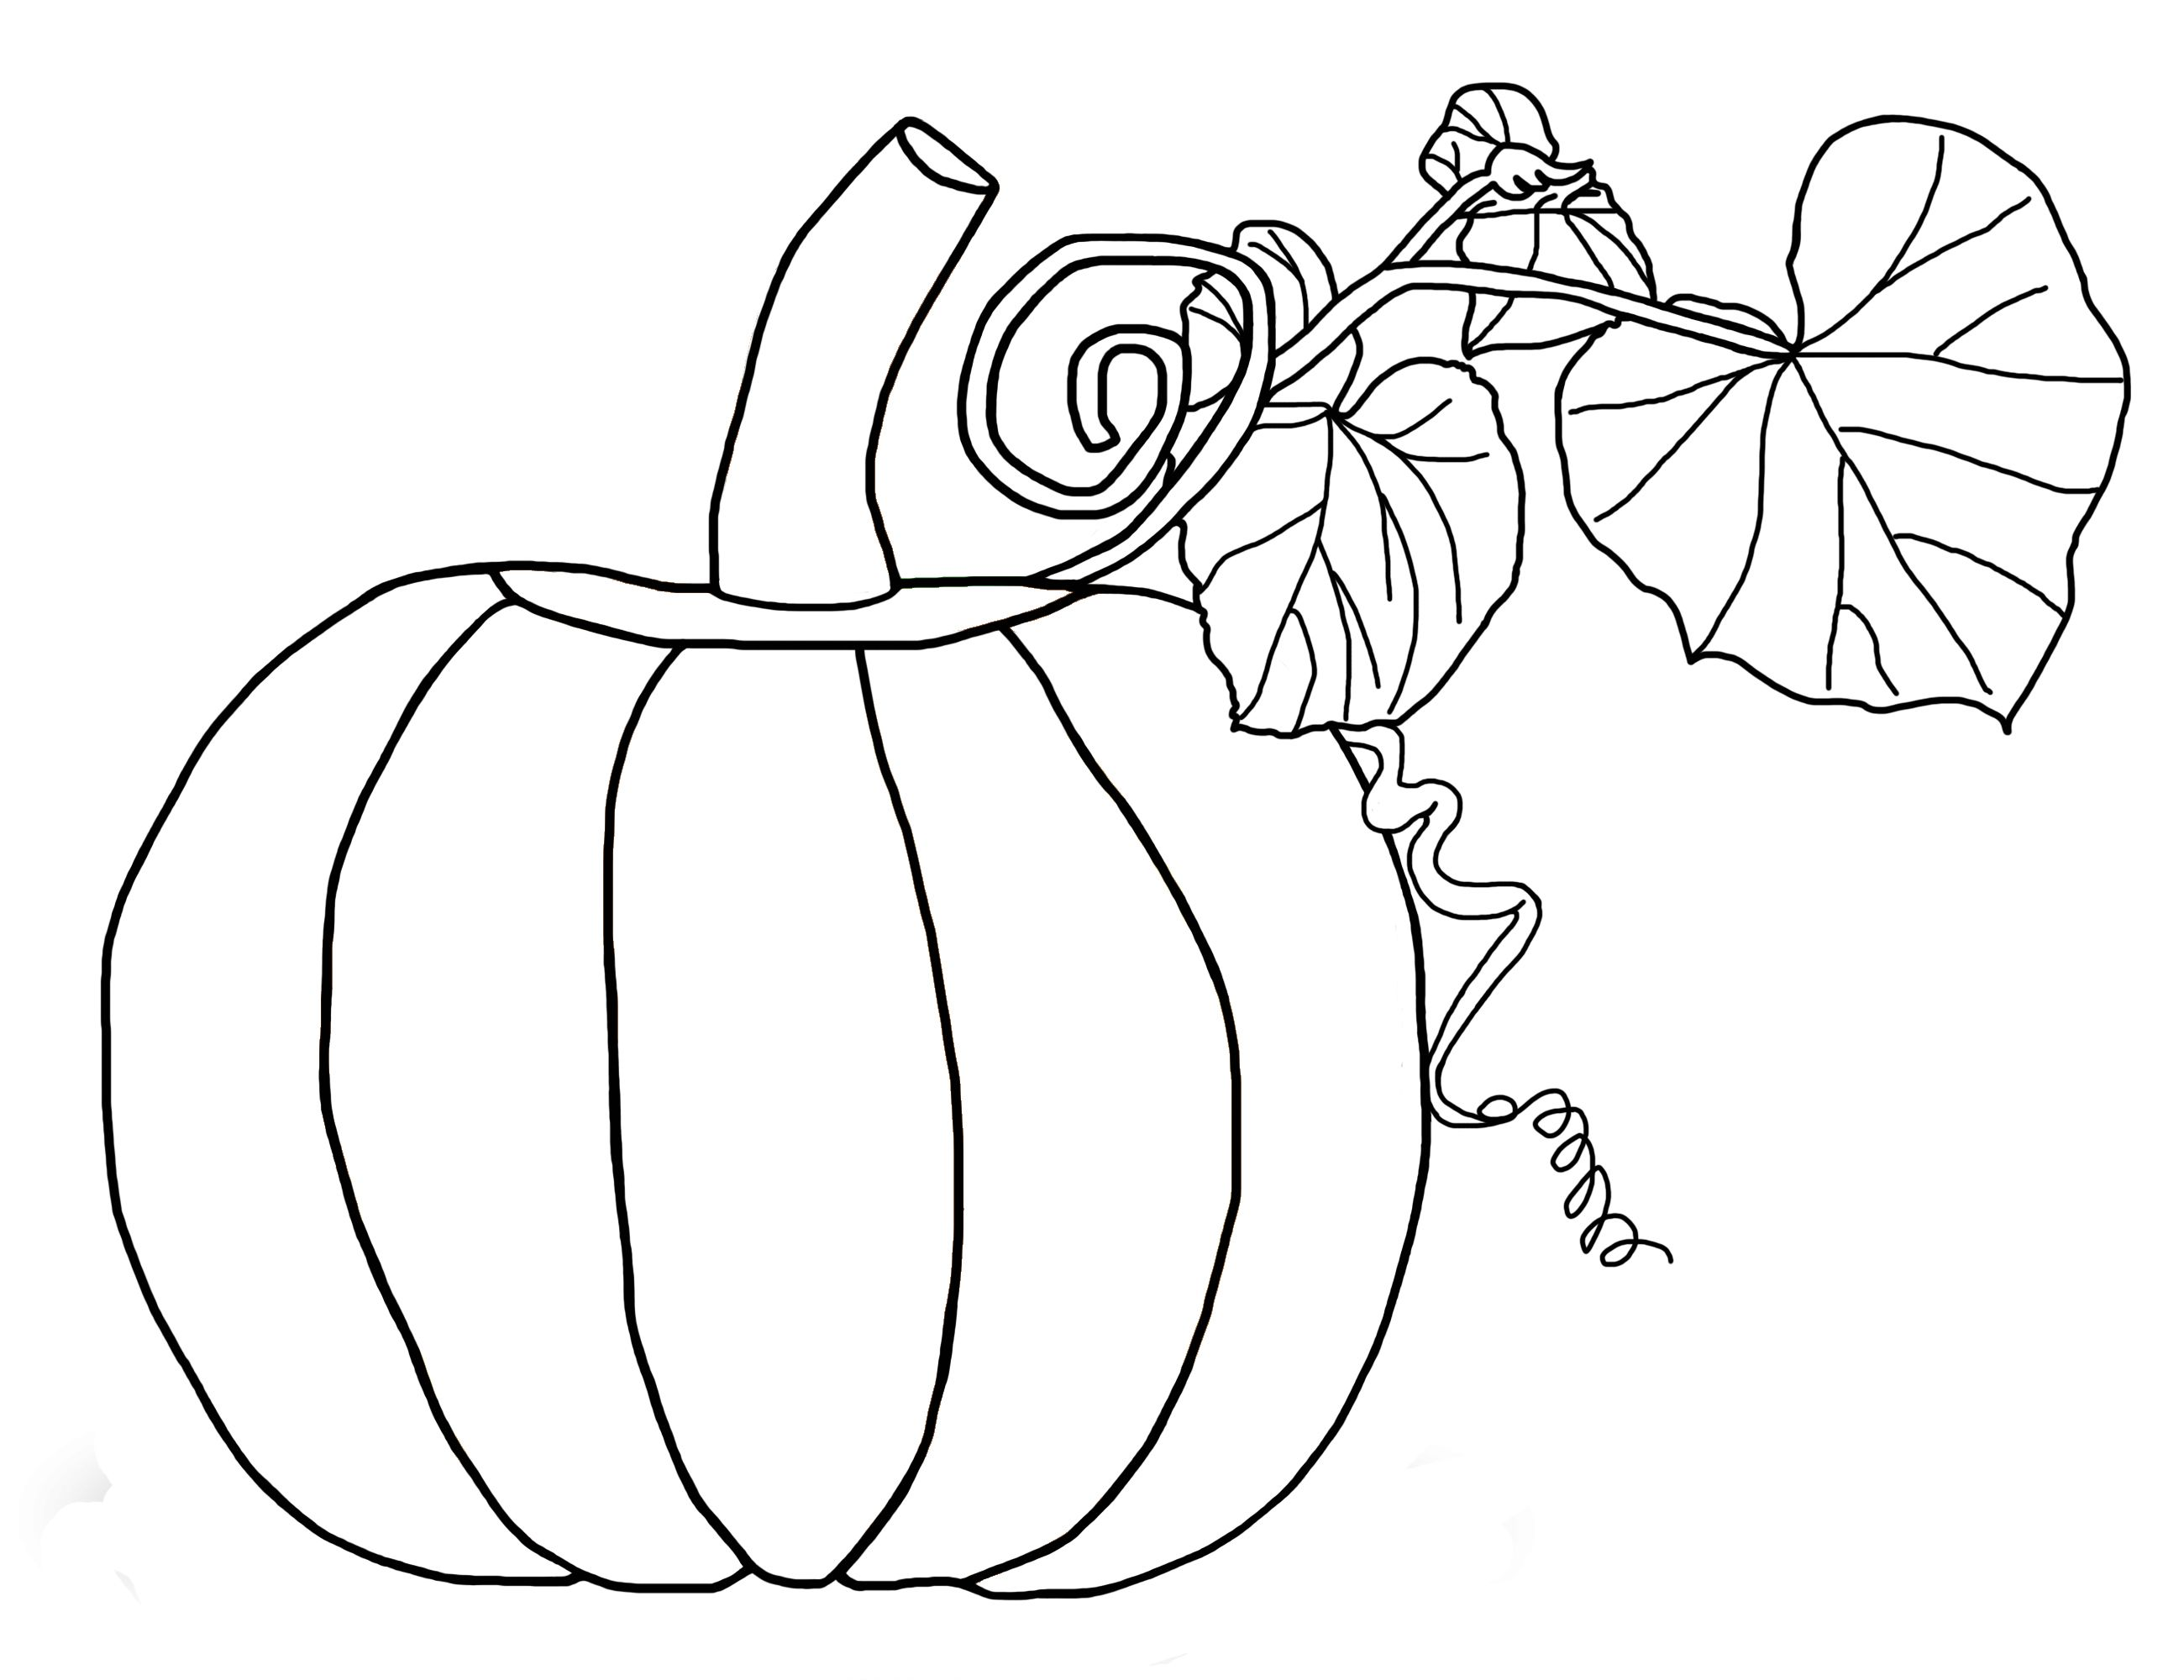 pumpkin coloring pages creative pumpkin coloring pages that are sure to make